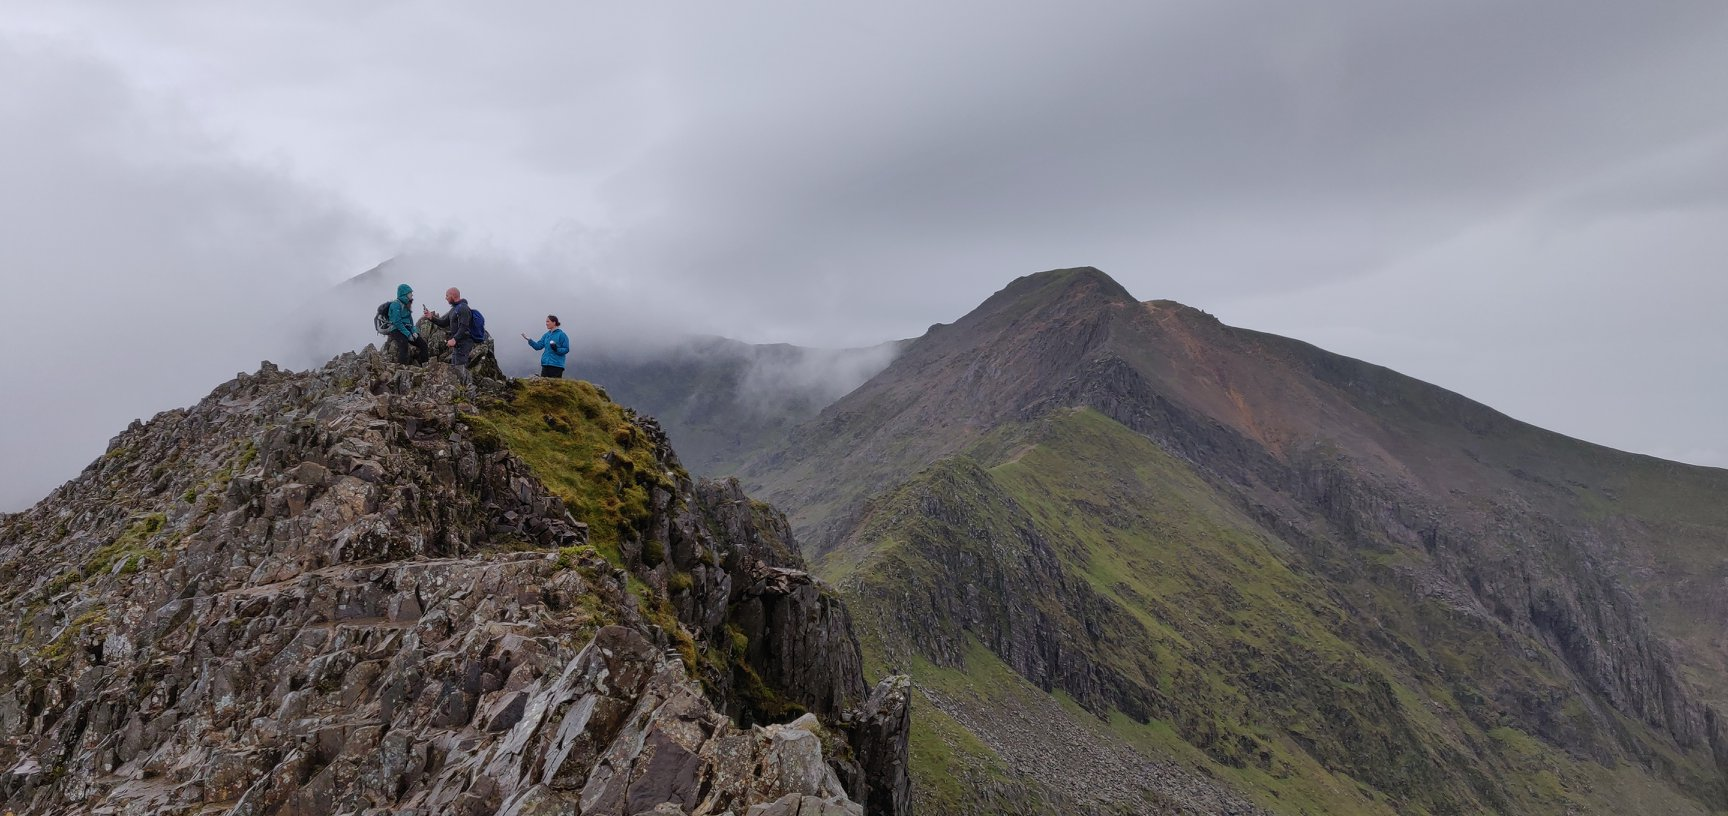 A group on Crib Goch, Snowdonia